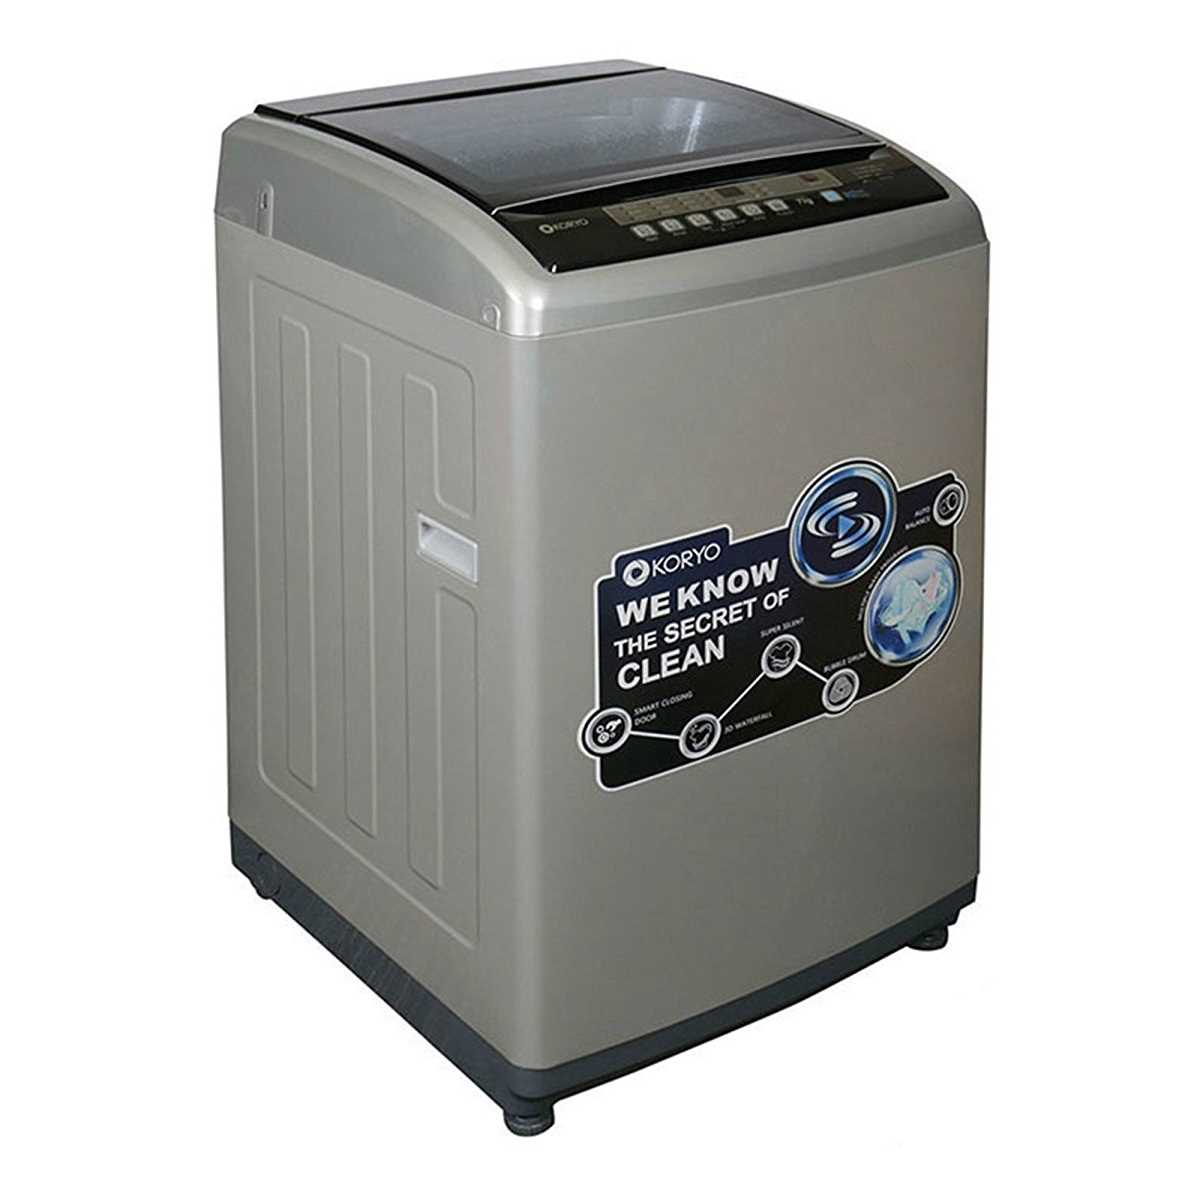 Koryo KWM8018TL 8 Kg Fully Automatic Top Loading Washing Machine